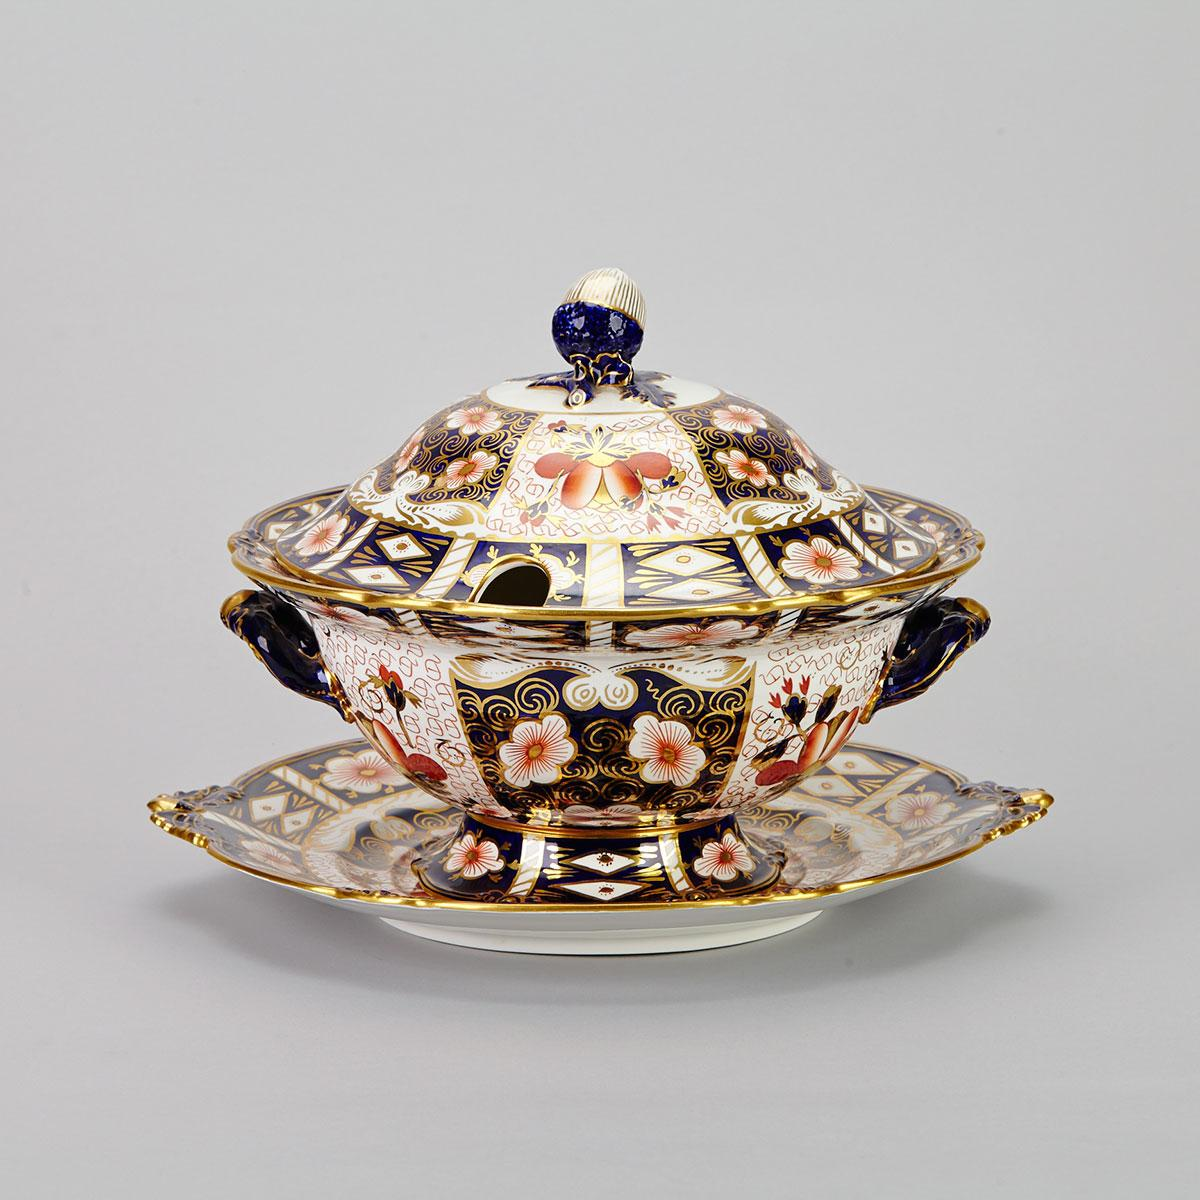 Royal Crown Derby 'Imari' (2451) Pattern Soup Tureen, Cover and Stand, 1948